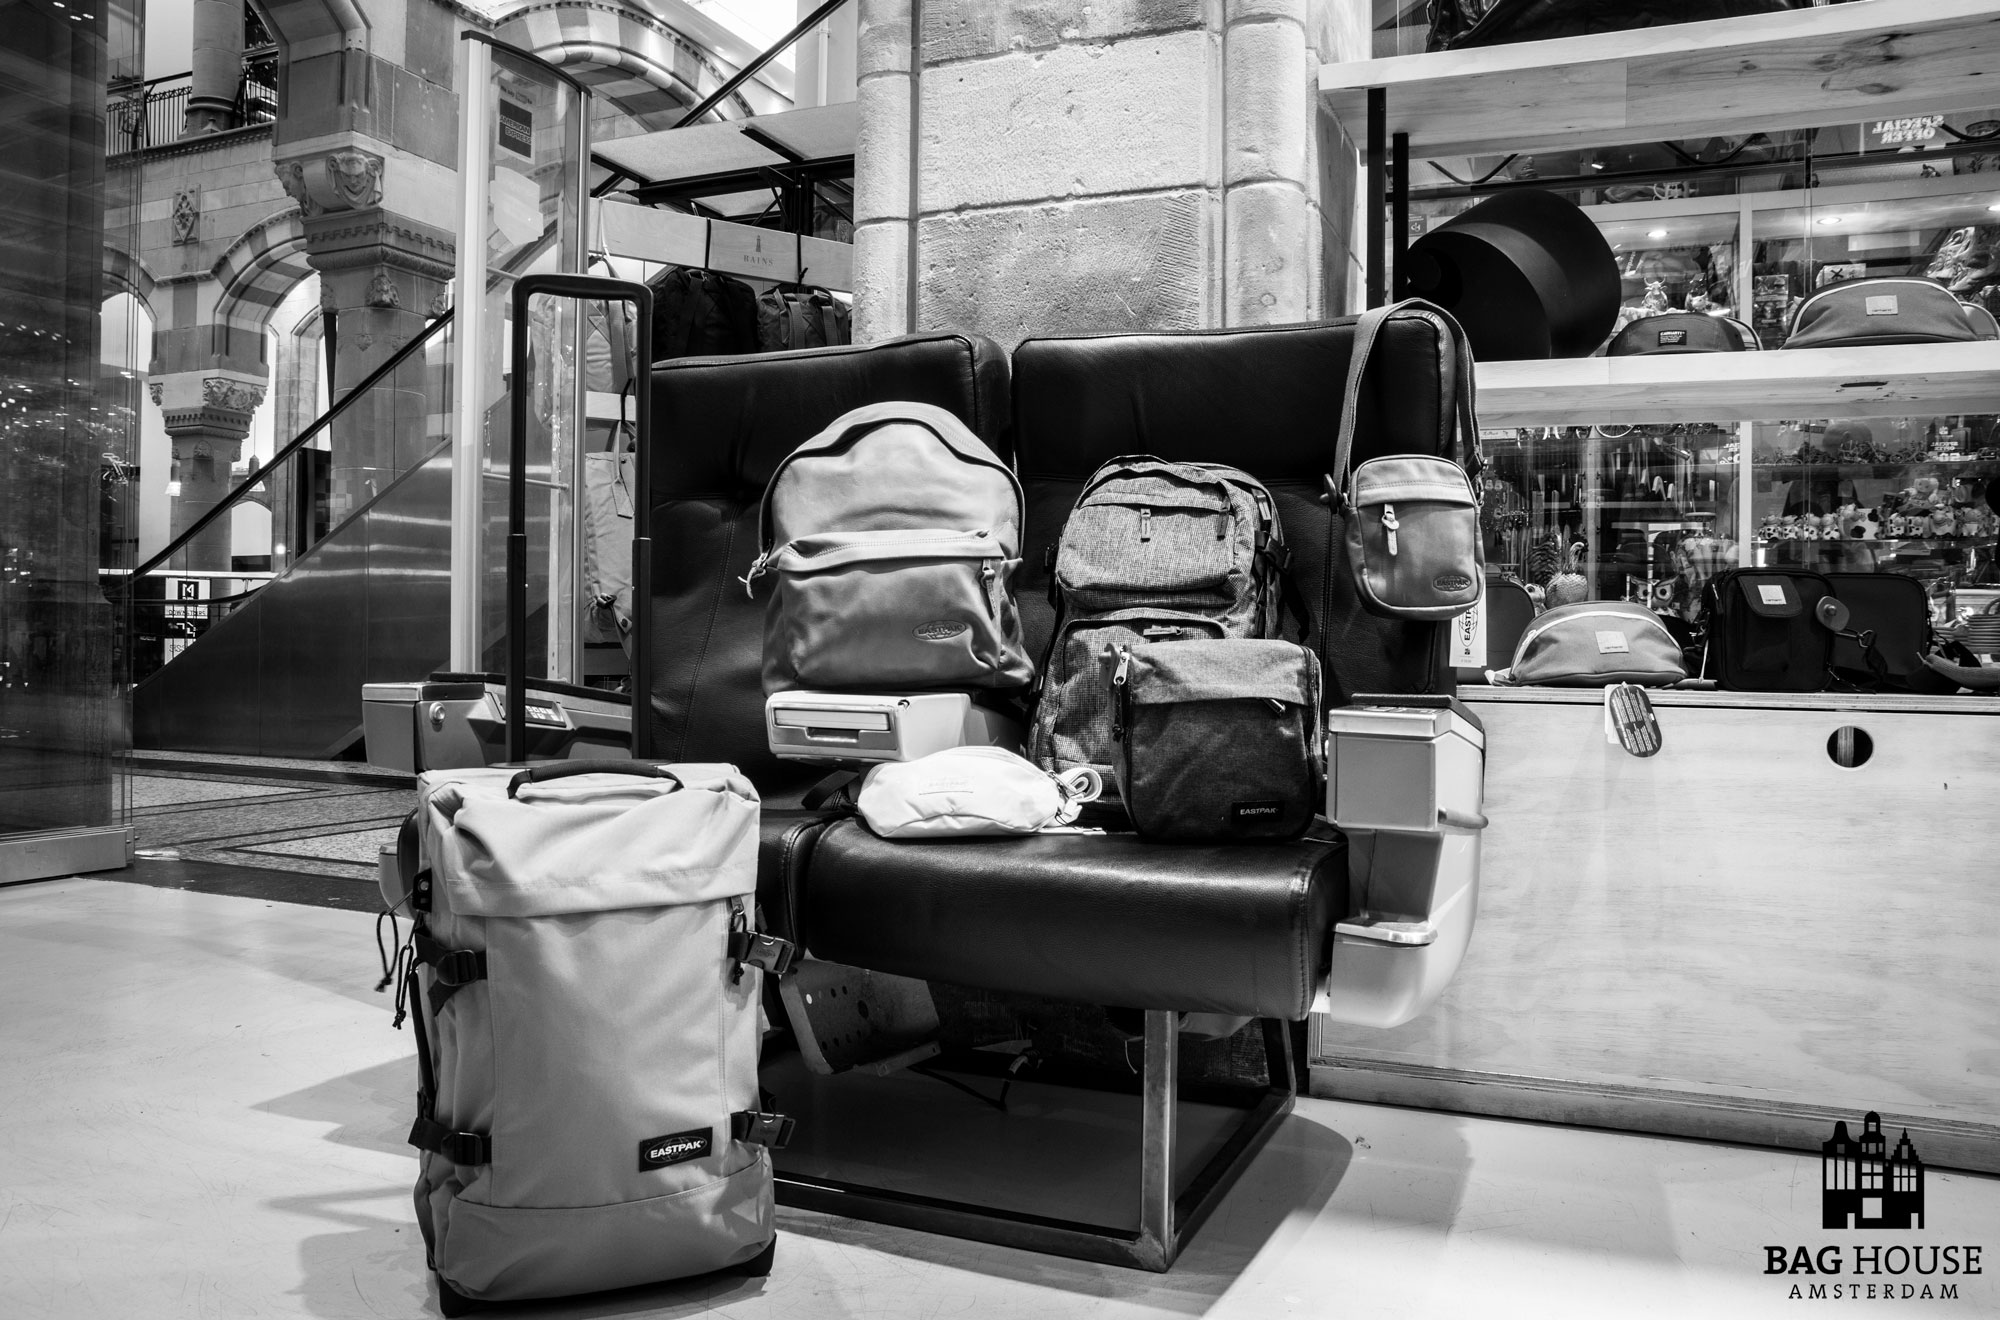 Baghouse Amsterdam for Travel Bags, Backpacks, Suitcases, Wallets. 2 hours delivery in Amsterdam!